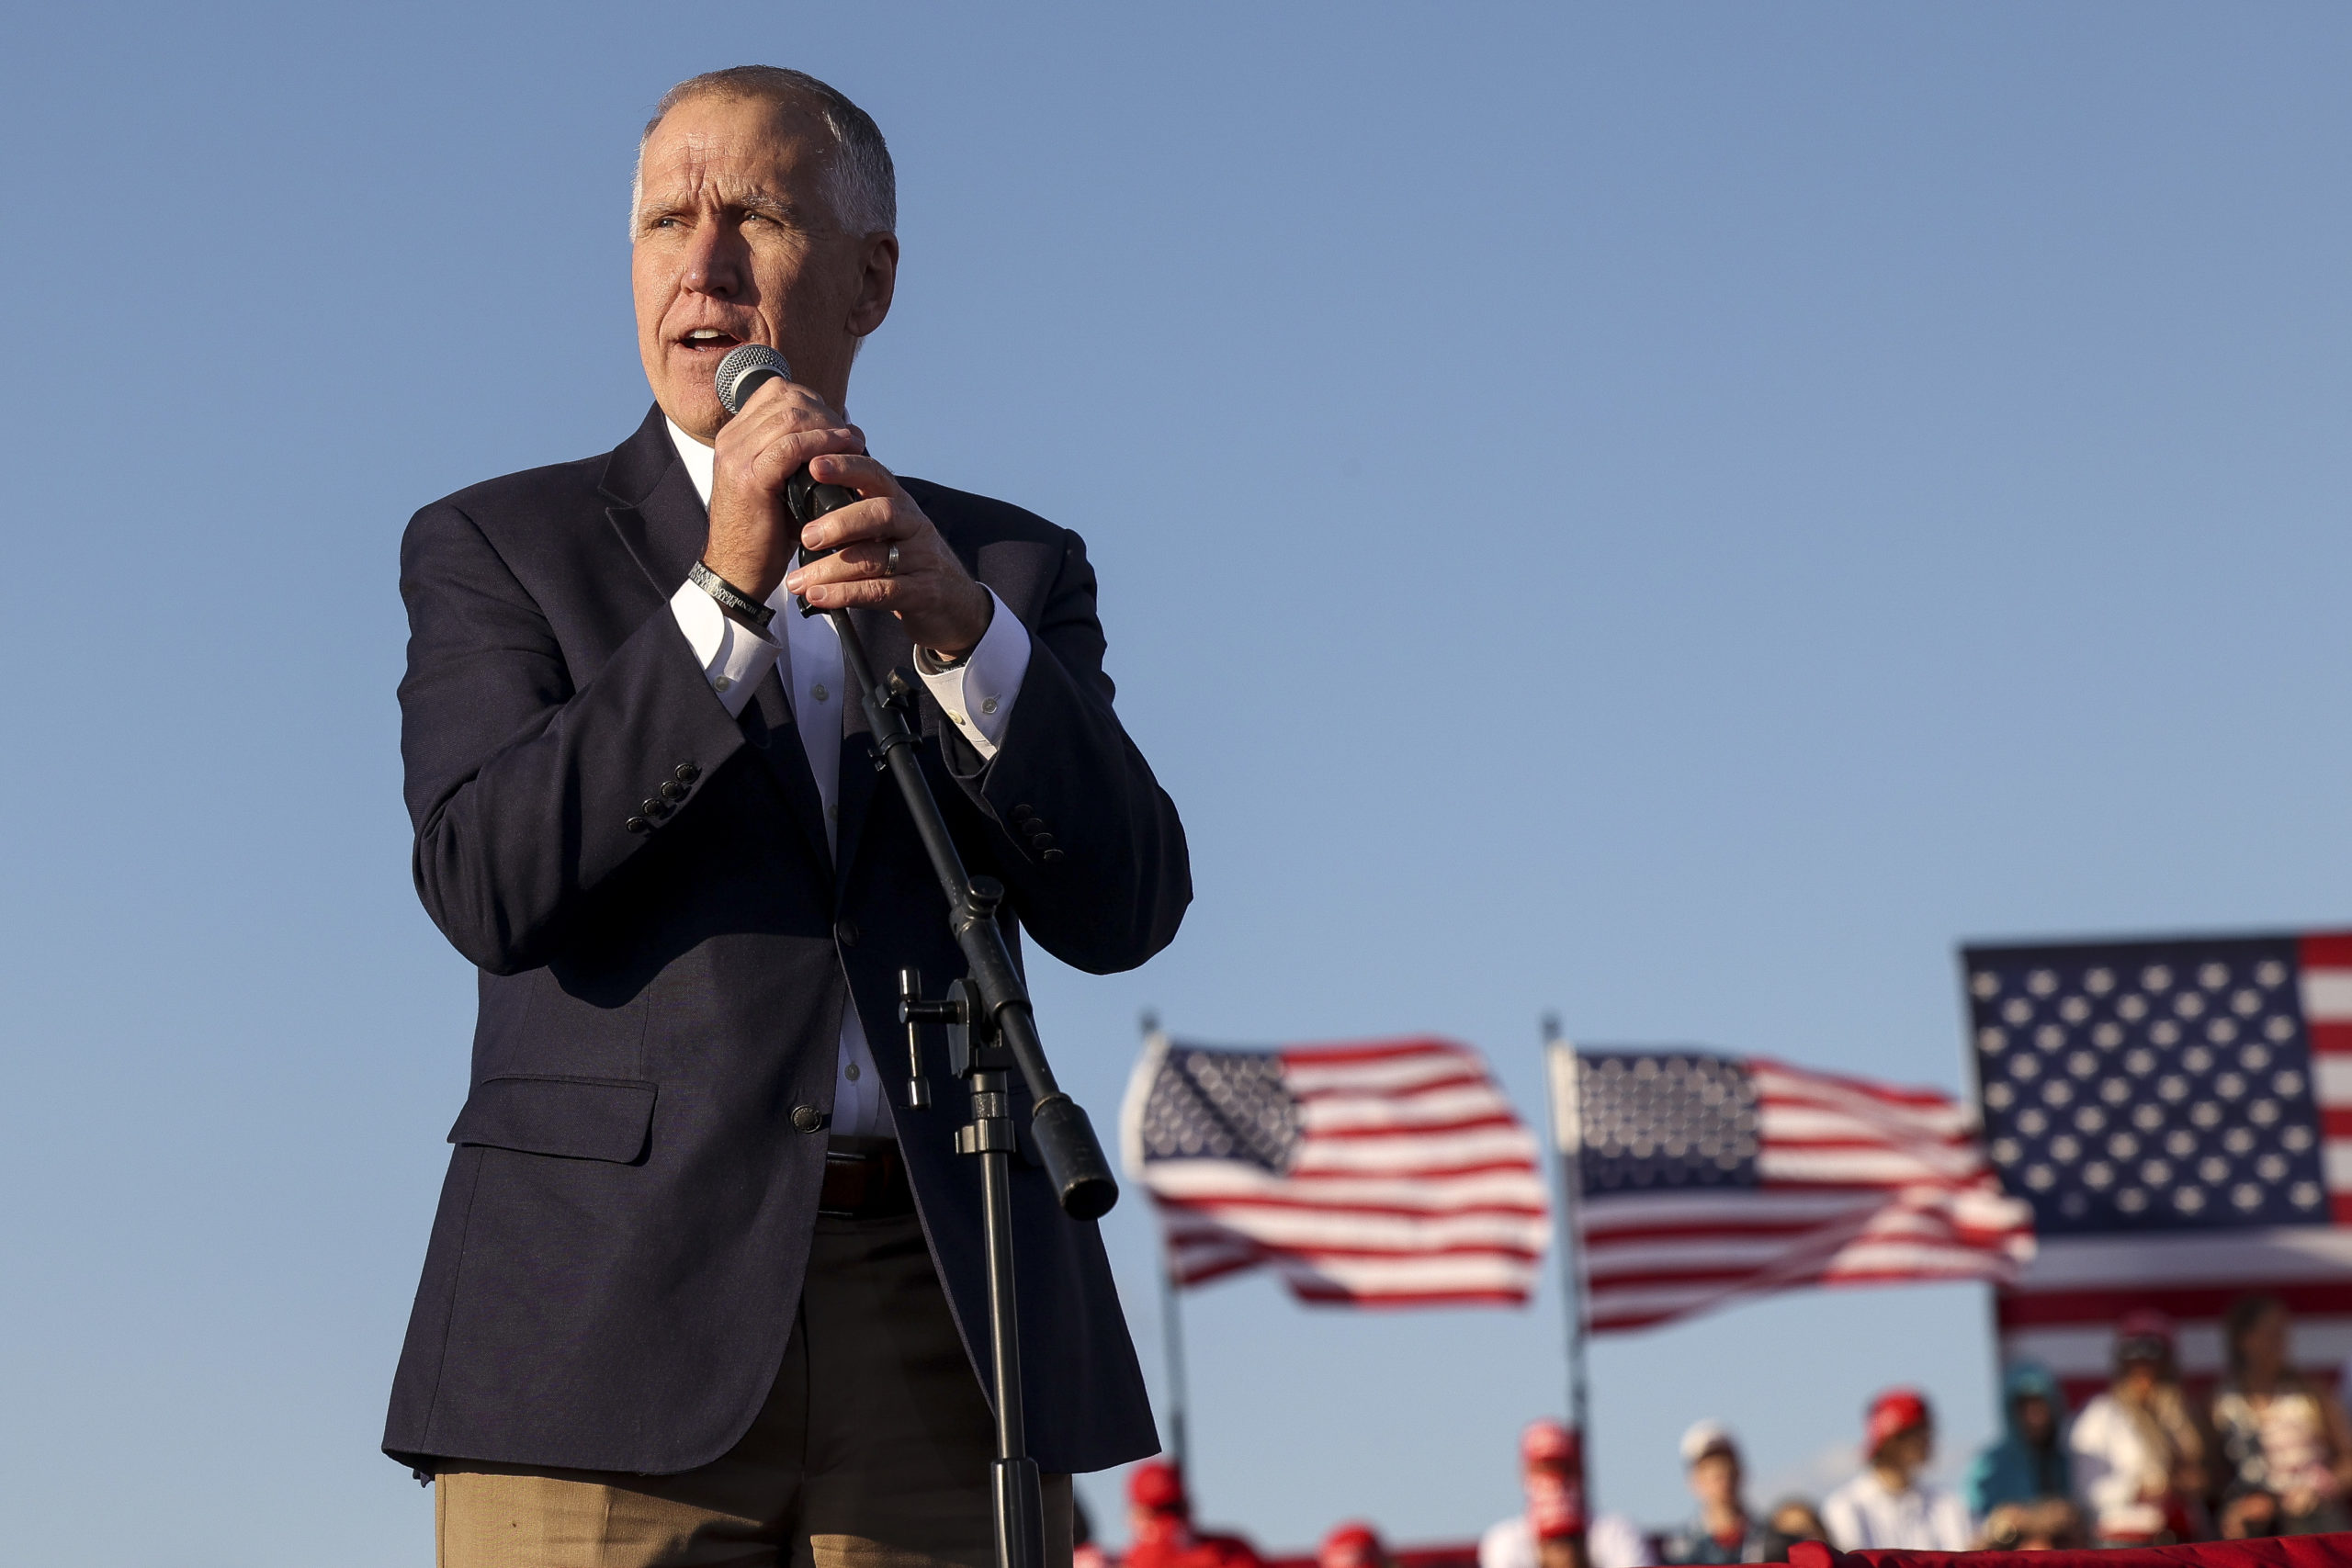 HICKORY, NC - NOVEMBER 01: Republican U.S. Senate candidate Sen. Thom Tillis (R-NC) speaks to the crowd before President Donald Trump holds a campaign rally at the Hickory Regional Airport on November 1, 2020 in Hickory, North Carolina. (Photo by Michael Ciaglo/Getty Images)